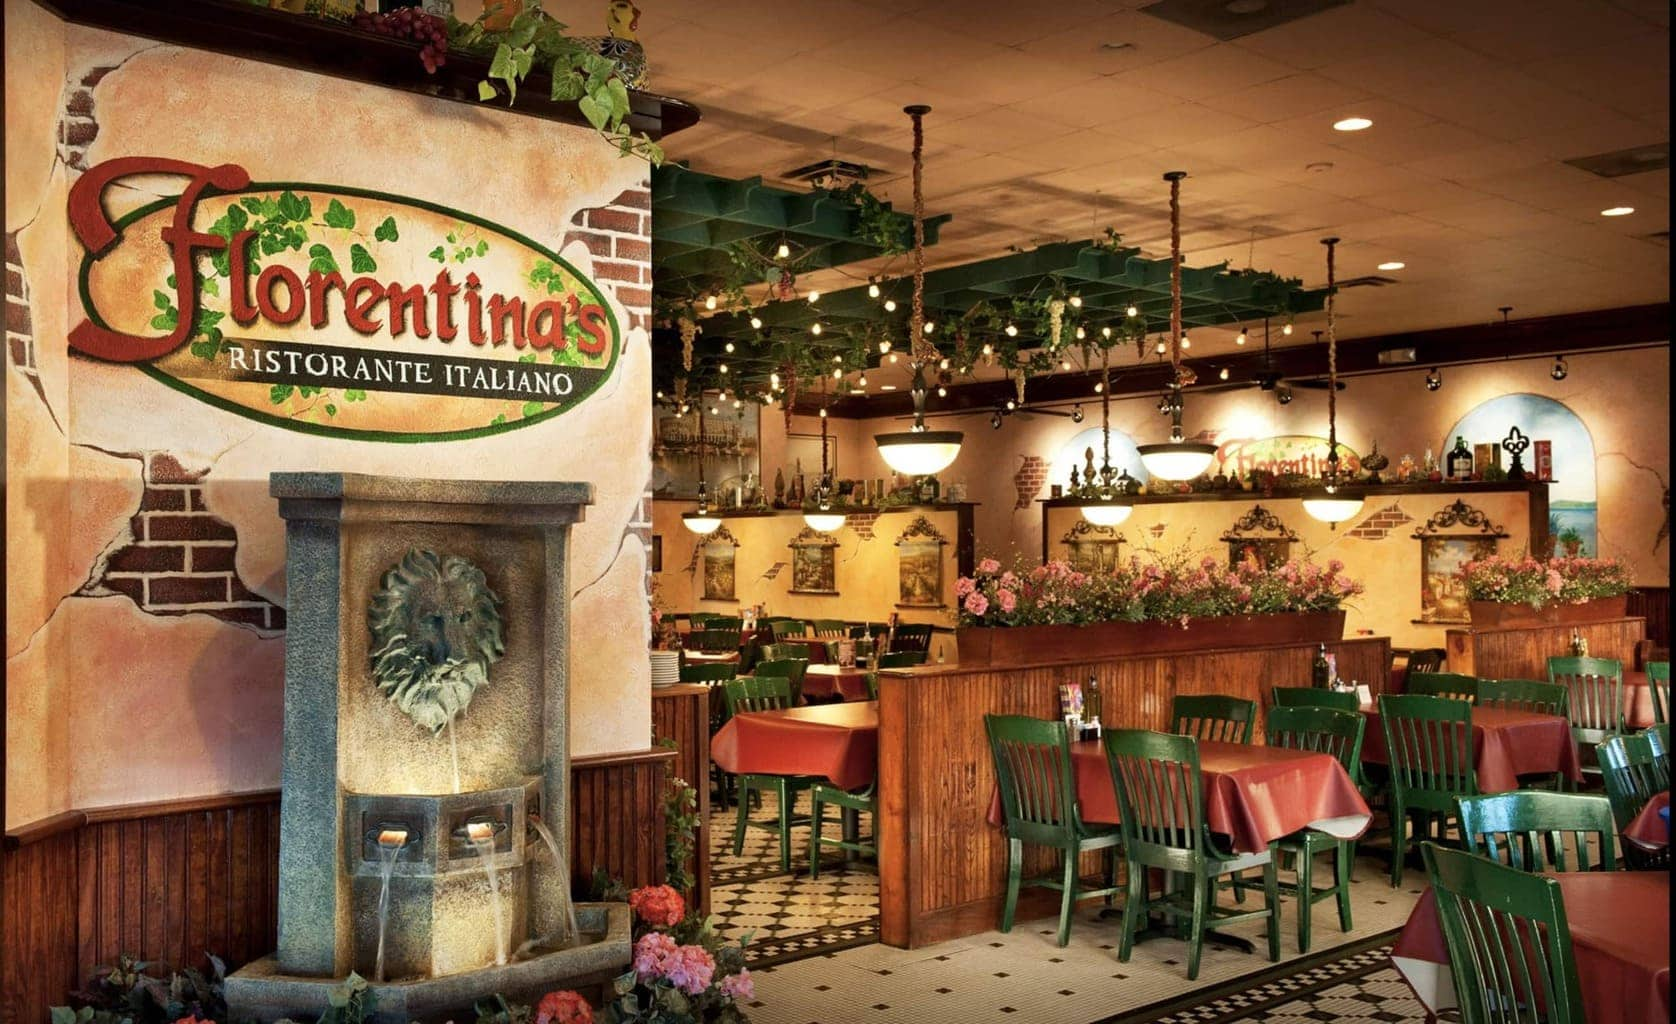 Florentina's Ristorante Italiano – Authentic Italian Food in Branson, MO